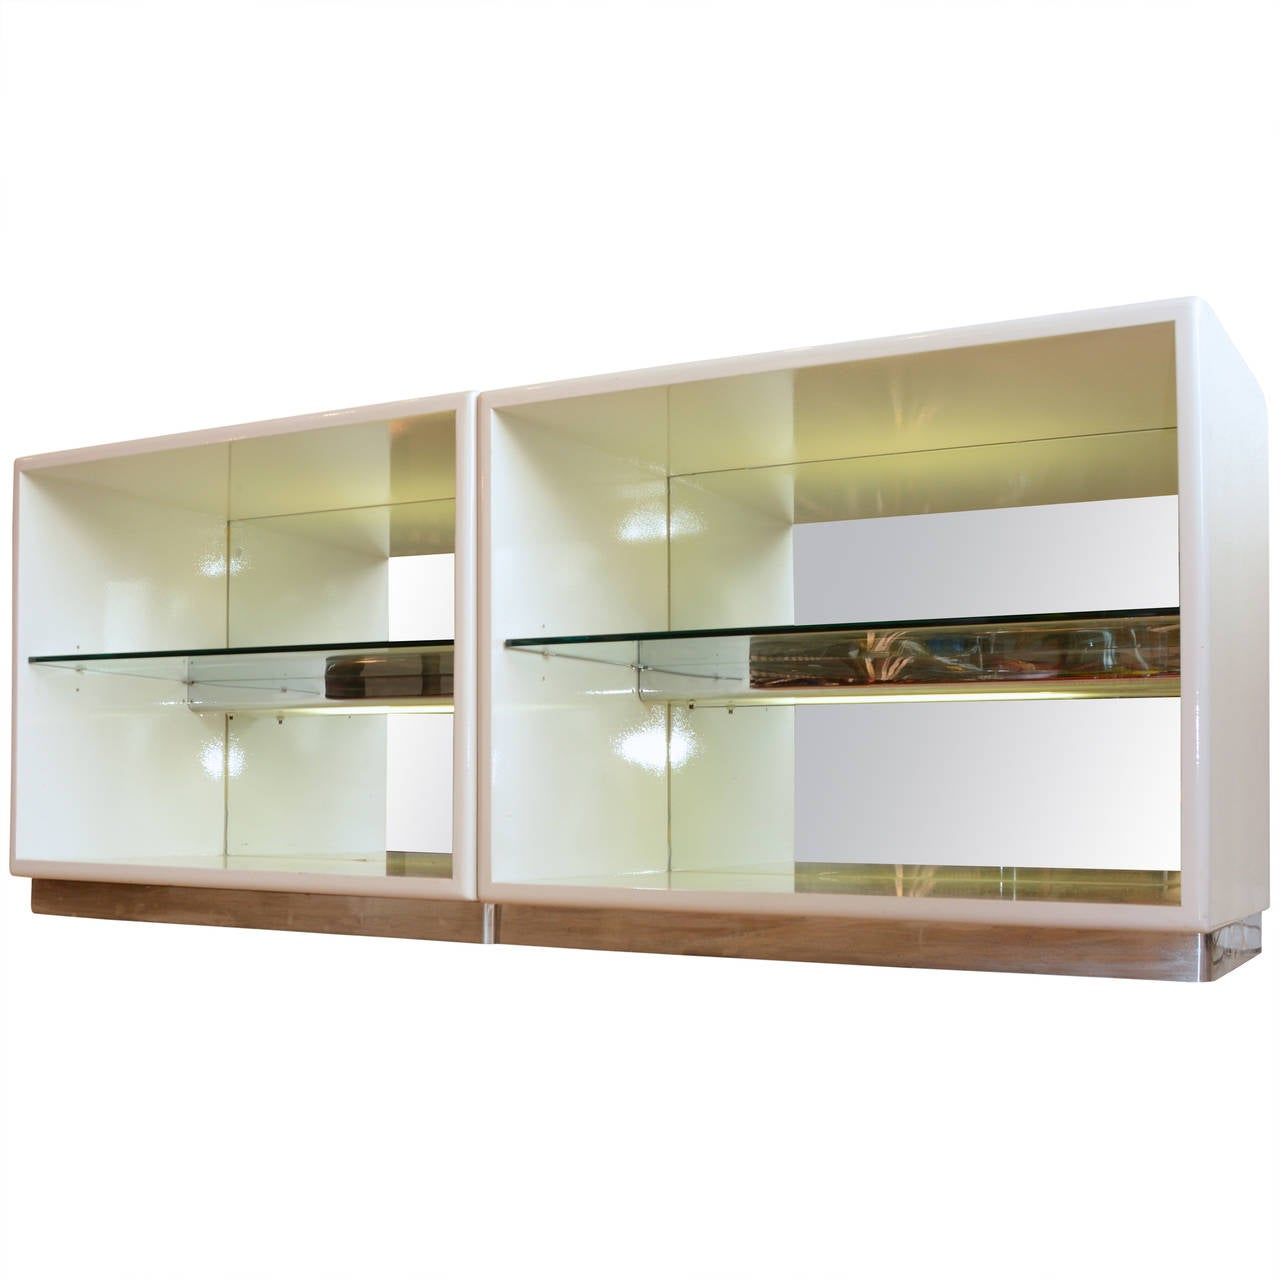 Mirrored Milo Baughman for Thayer Coggin White Lacquer Cabinets 1